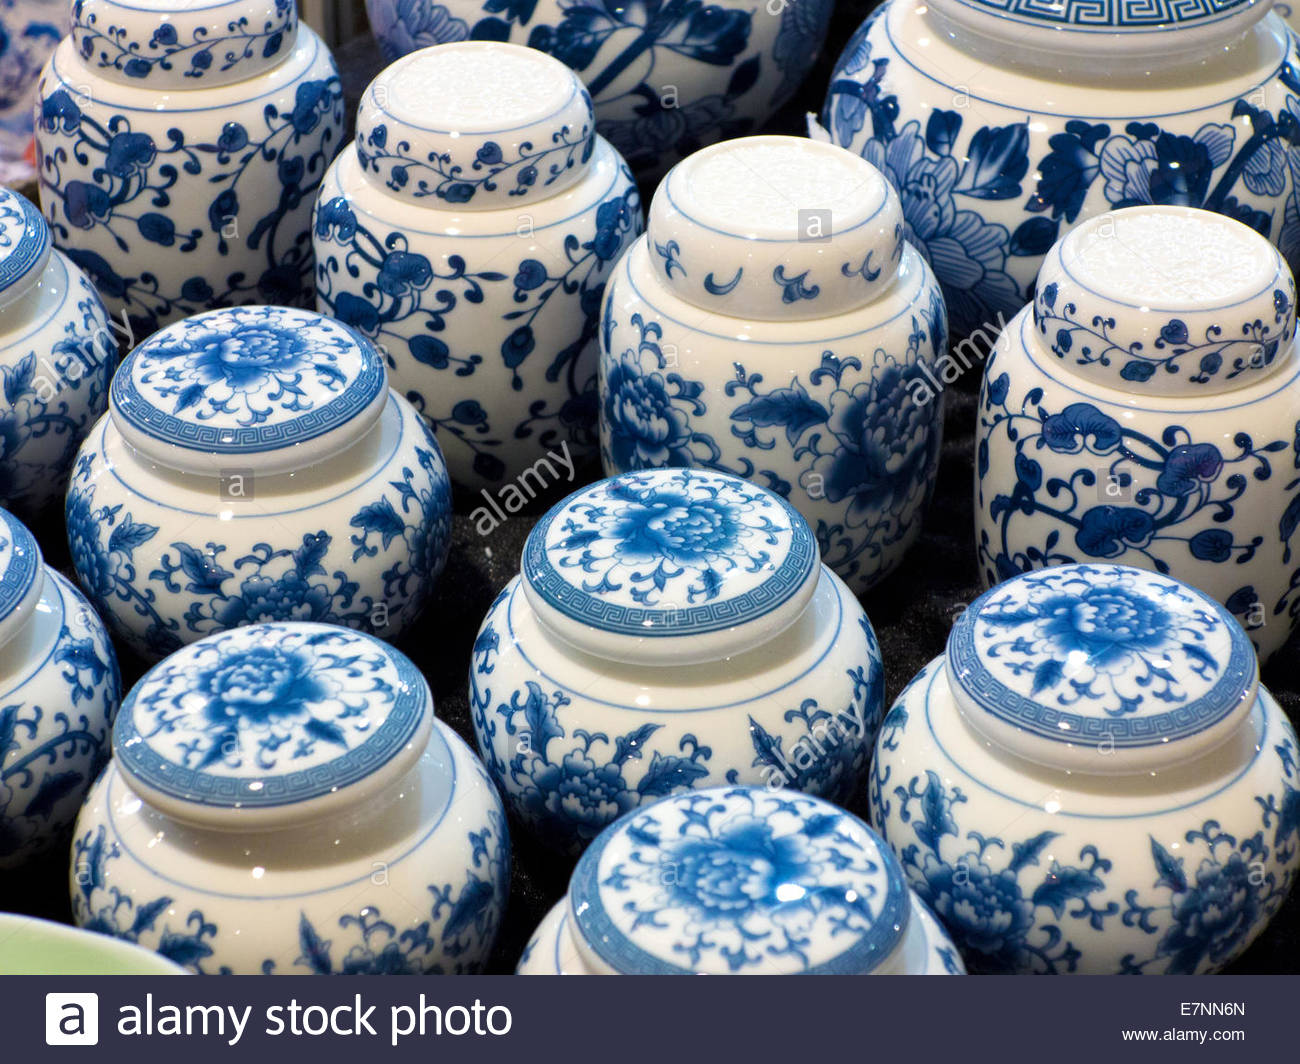 Close-up of blue and white porcelain jars - Stock Image